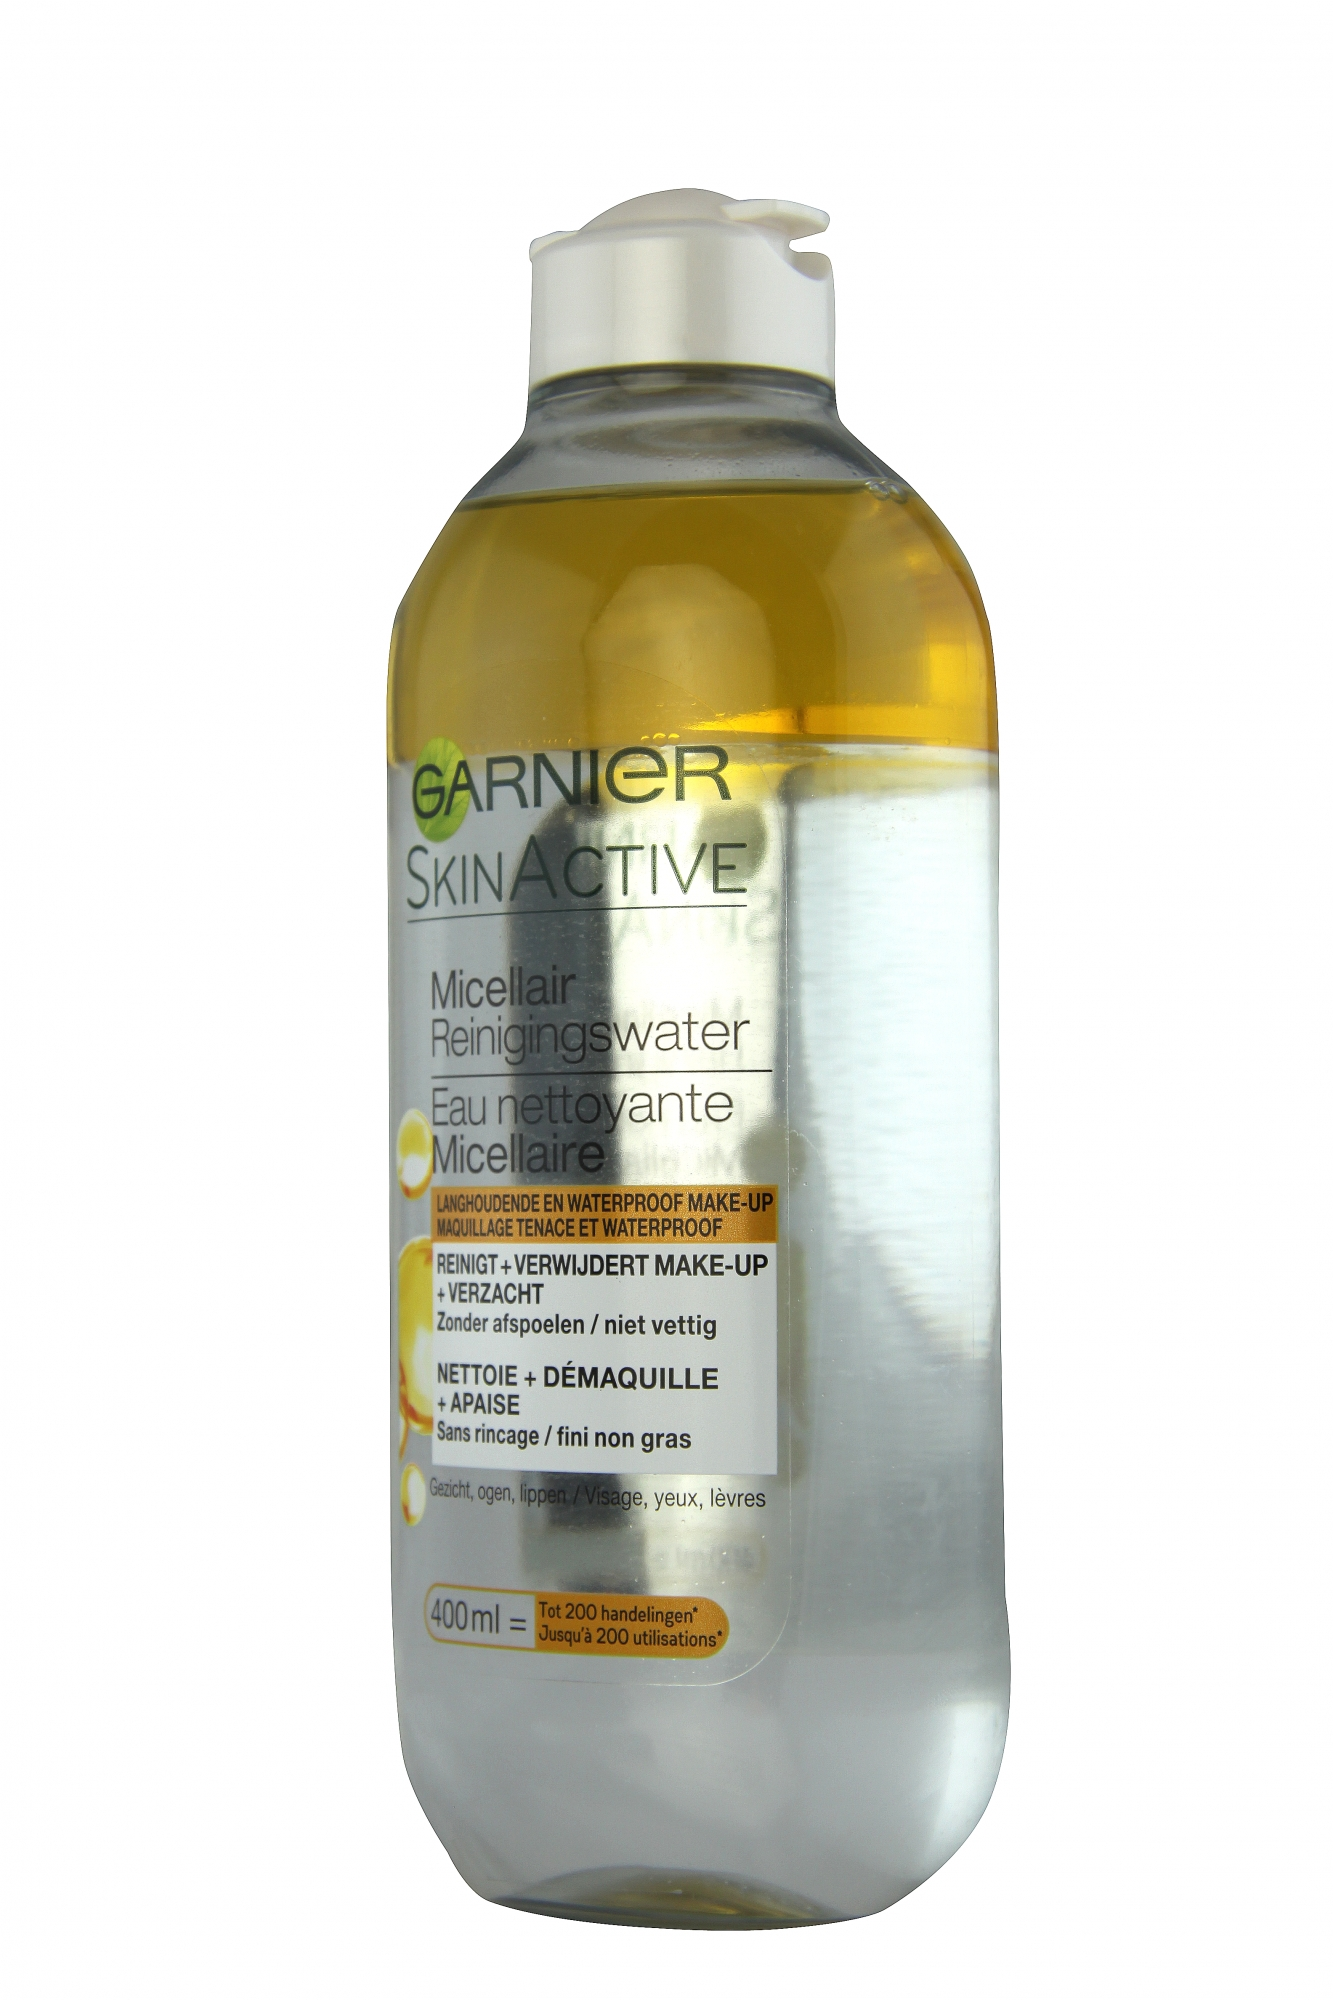 Garnier - SkinActive Micellair Reinigingswater langhoudende en waterproof Make-Up